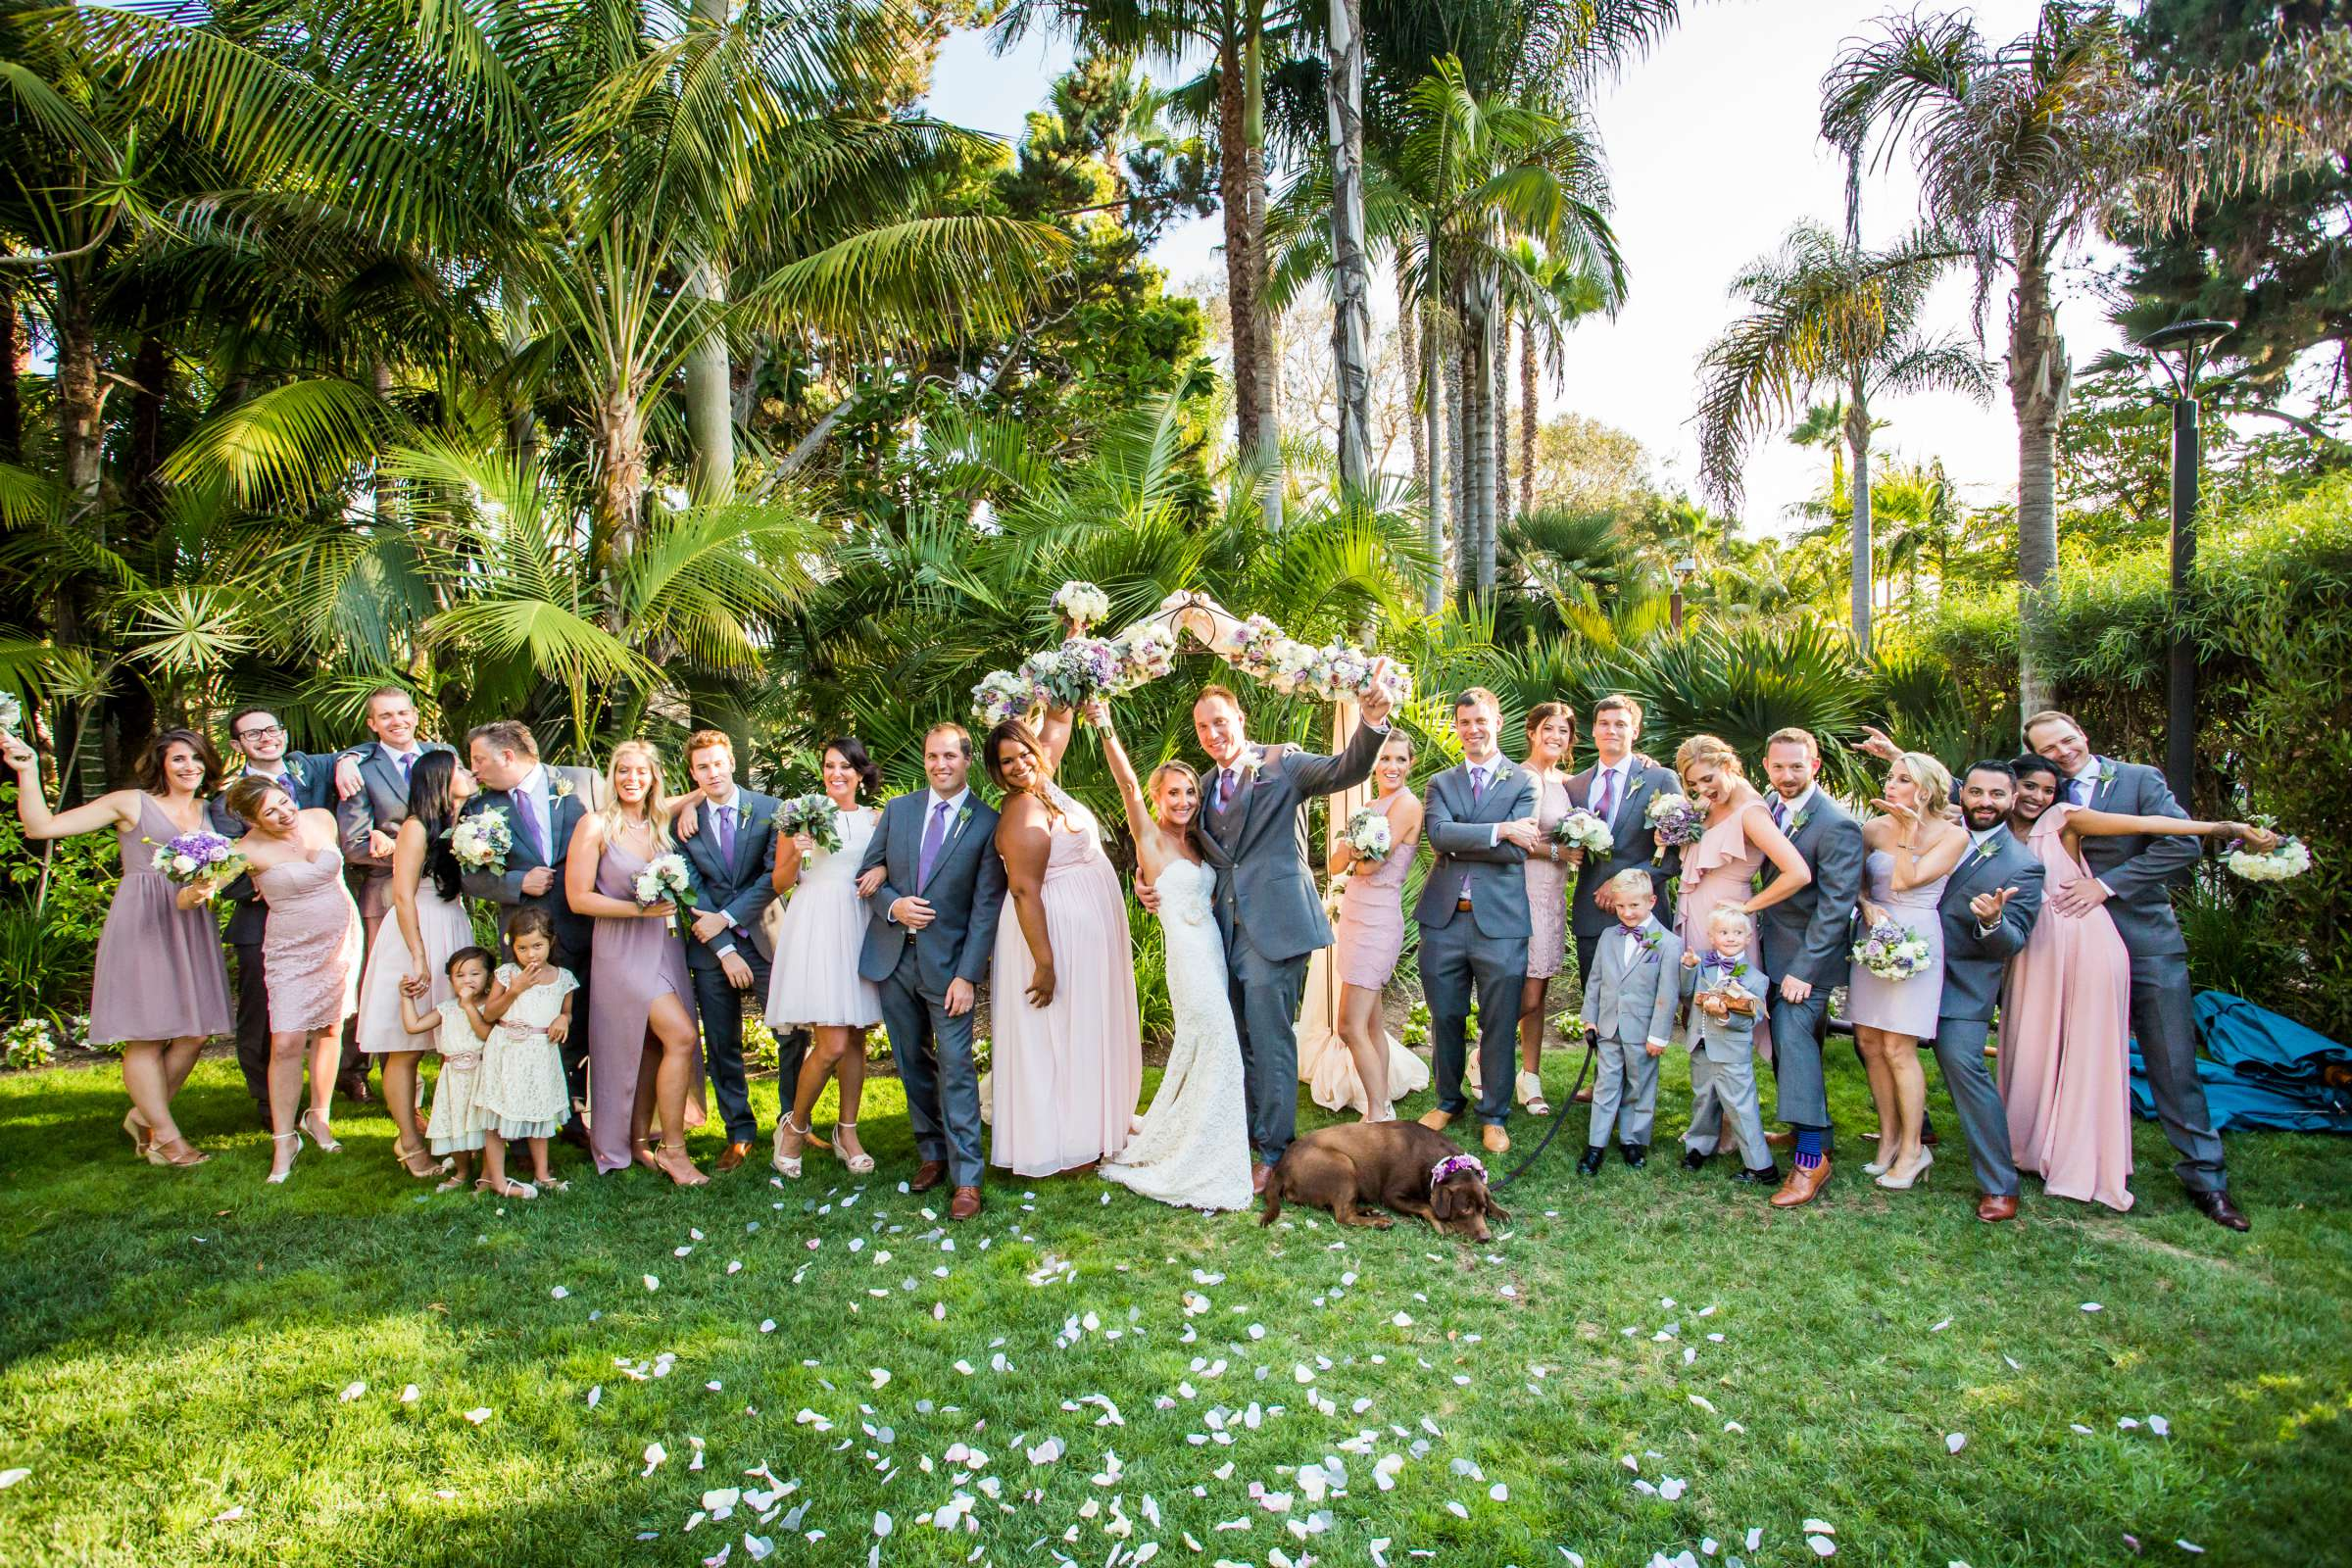 Paradise Point Wedding, Kimberly and Michael Wedding Photo #60 by True Photography